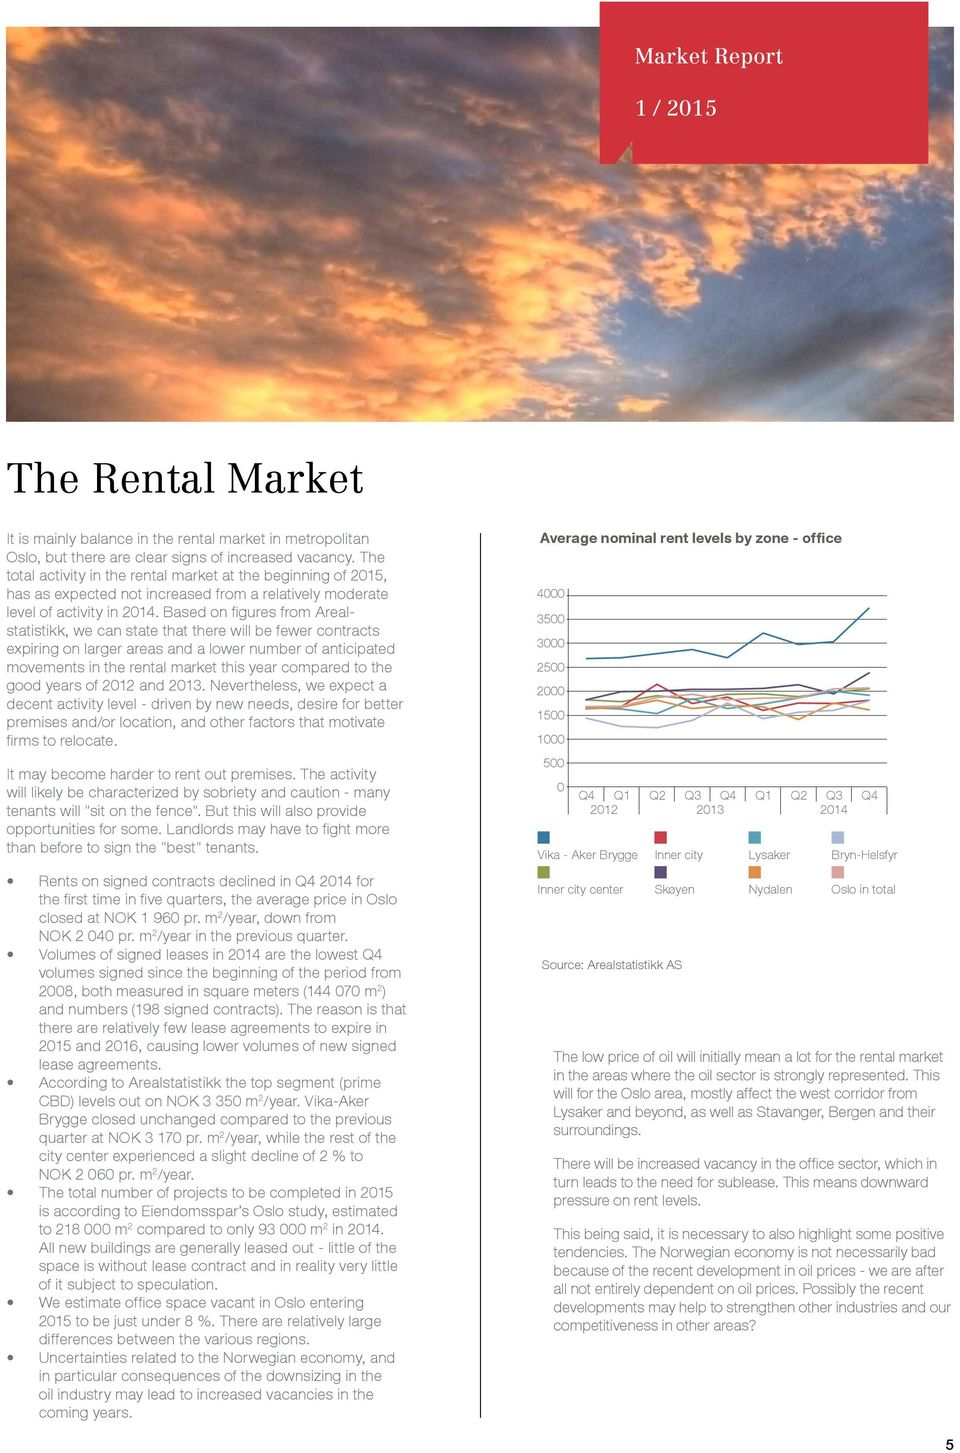 Based on figures from Arealstatistikk, we can state that there will be fewer contracts expiring on larger areas and a lower number of anticipated movements in the rental market this year compared to